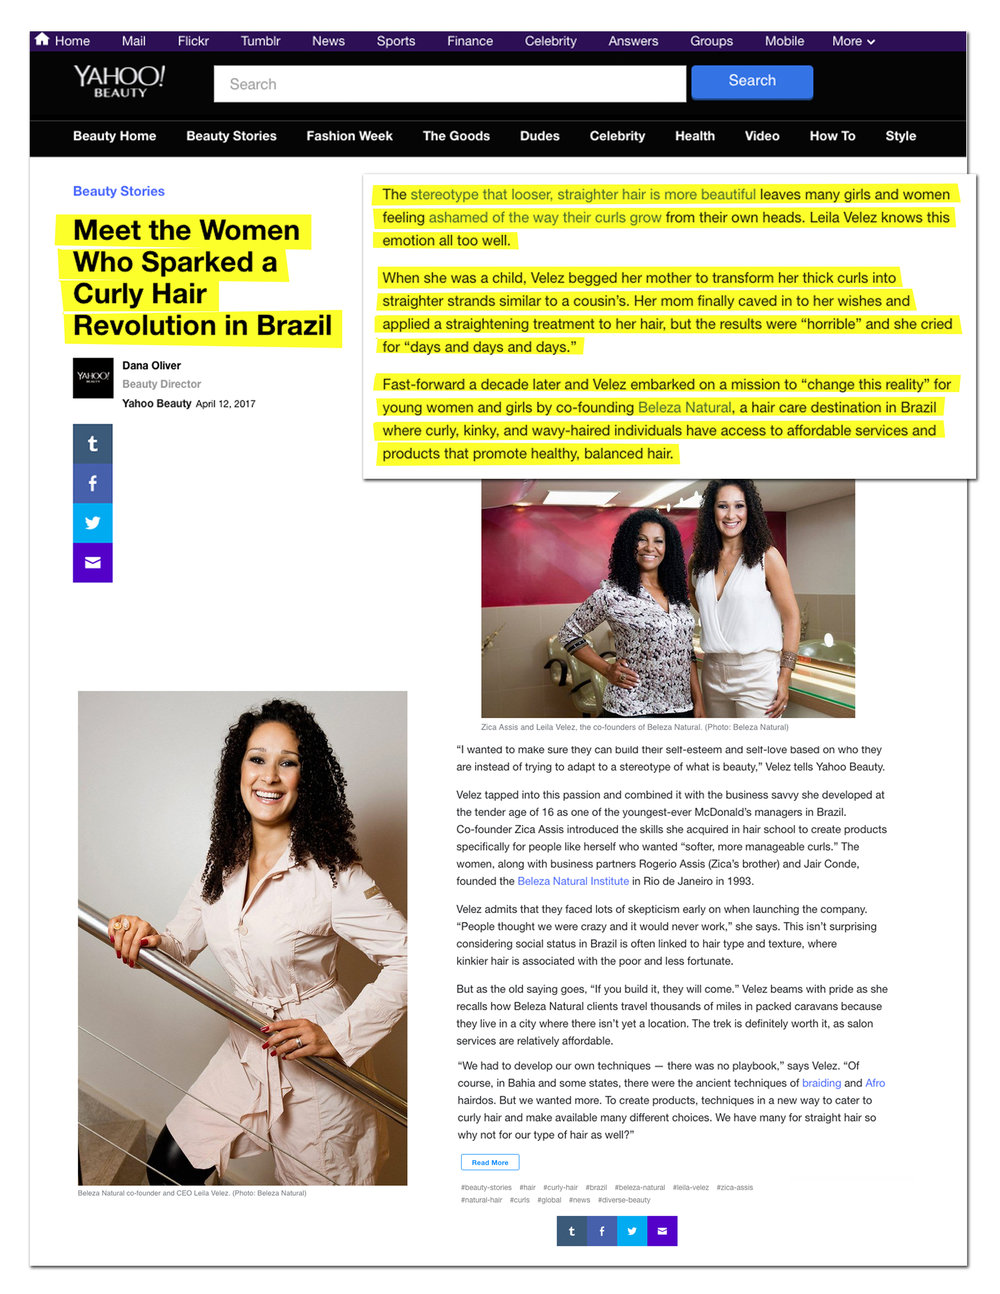 """Trusted """"Curl Masters"""" and highly renowned entrepreneurs Zica Assis and Leila Velez, who revolutionized the Brazilian beauty market more than twenty years ago, will debut the first U.S.Beleza Natural Institute in the heart of Harlem, New York City.Beleza Natural, a trusted name in Brazil as the premier destination for the care and treatment of curly, wavy and kinky hair, offers an enriching salon experience dedicated to nourishing clients' inner and outer beauty. A visit to a one-of-a-kind Beleza Natural Institute guarantees an empowering experience including education on the care and health of curly hair paired with high-quality products, pampering treatments and fast, professional service."""